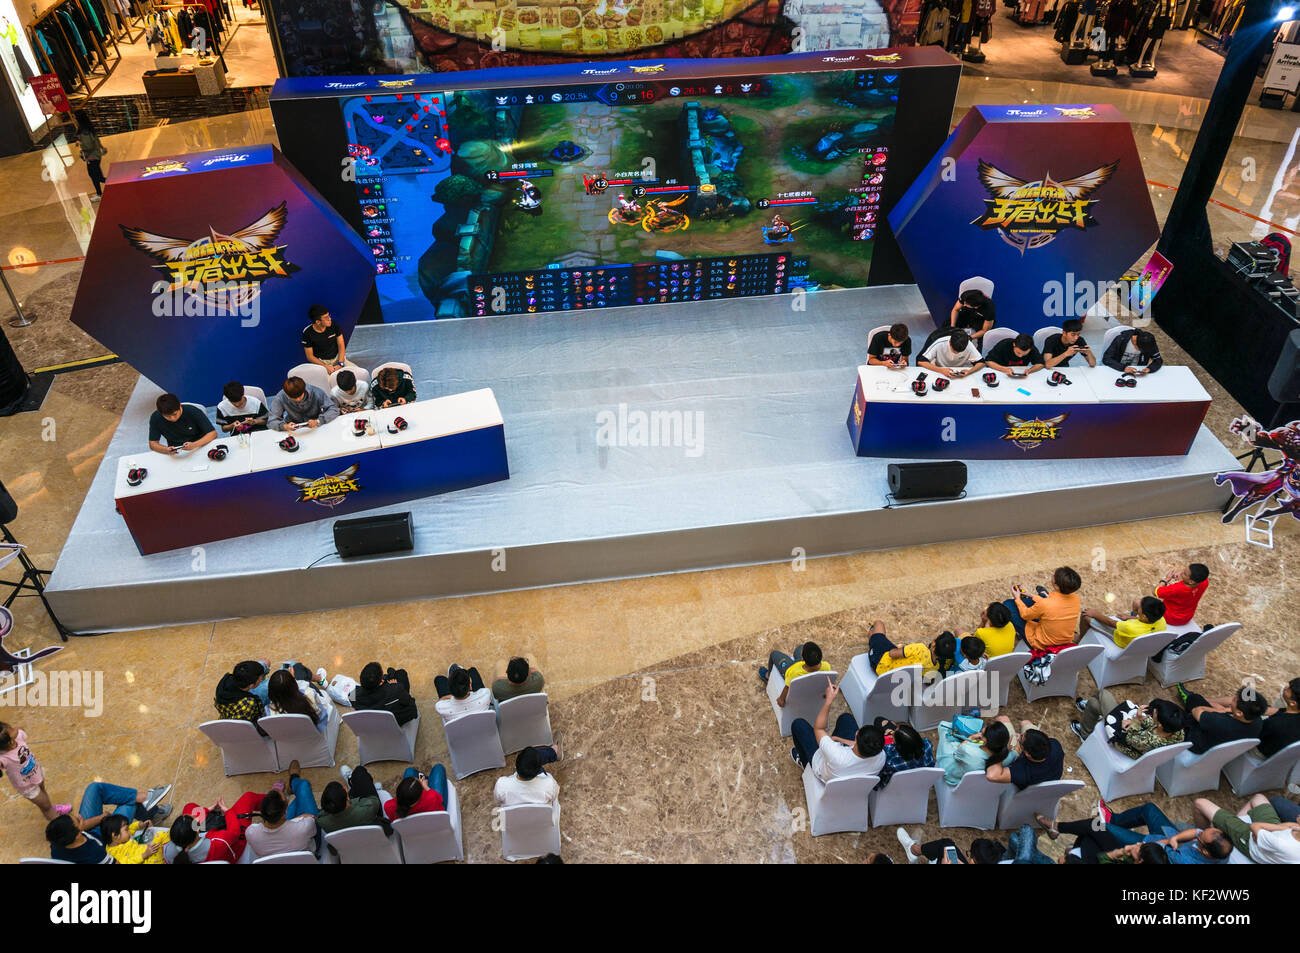 MOBA multiplayer online battle arena video game competition, Kings Smackdown, a League of Legends style game, 5v5, - Stock Image